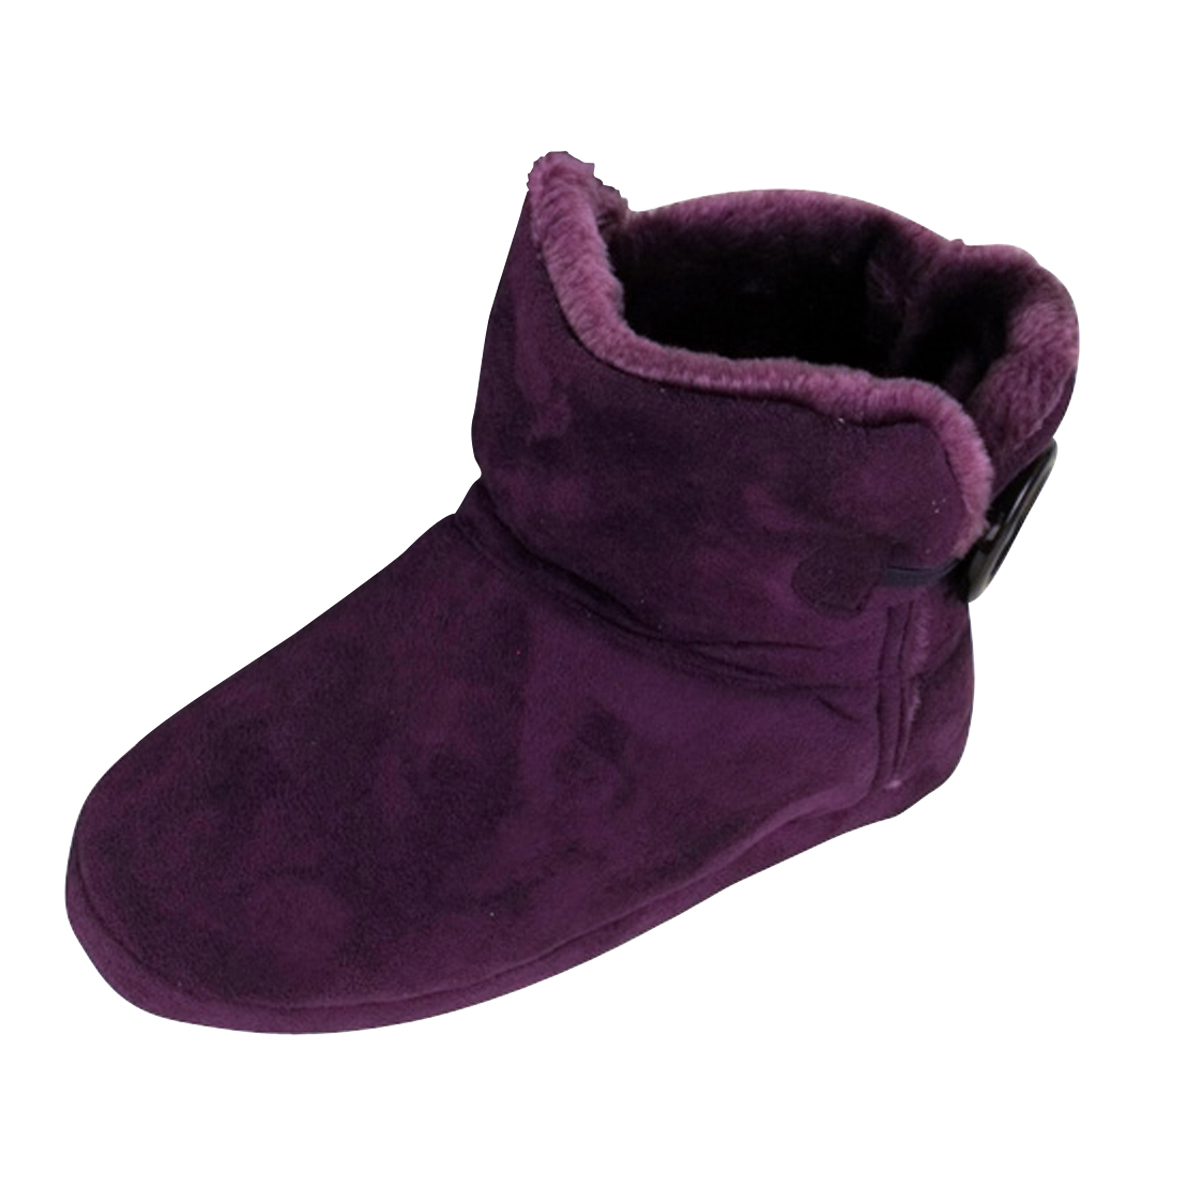 dunlop purple faux suede ankle boot bootee slipper